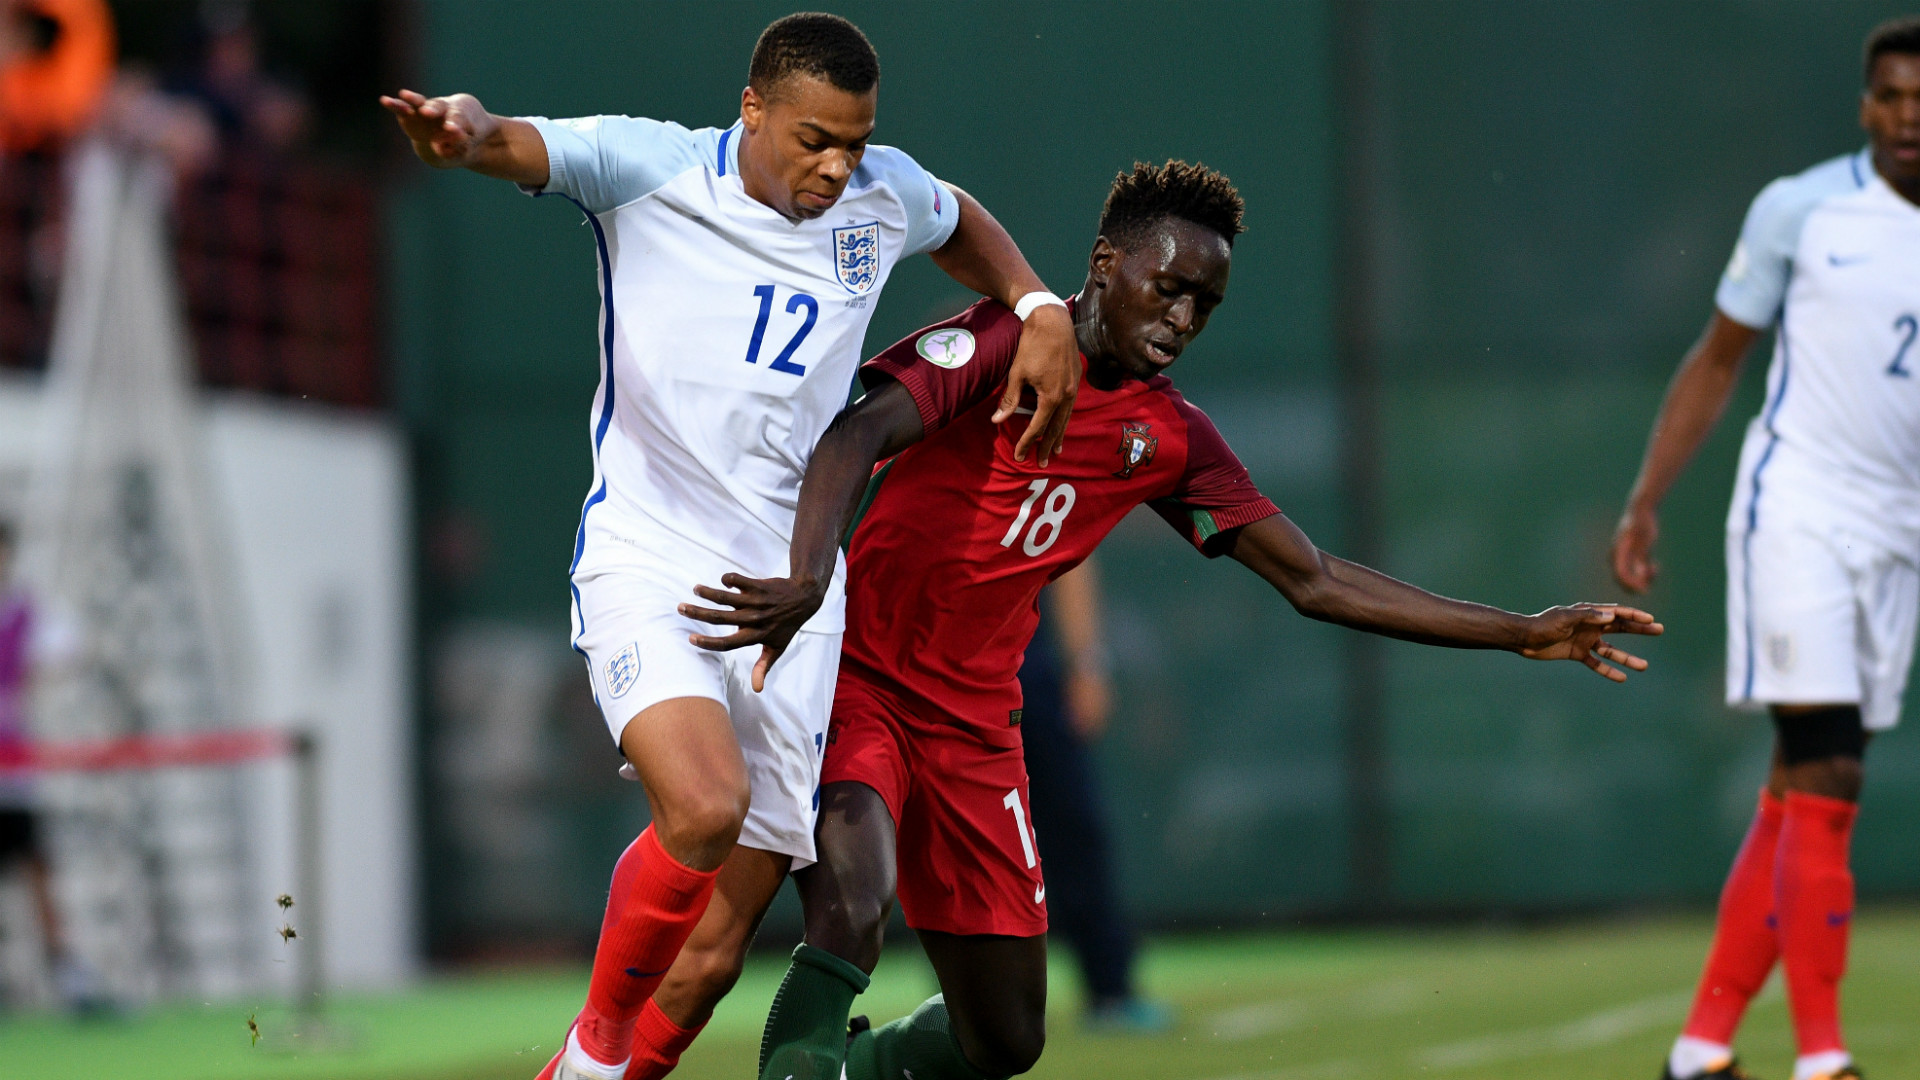 England beat Portugal to win European Under-19 Championship